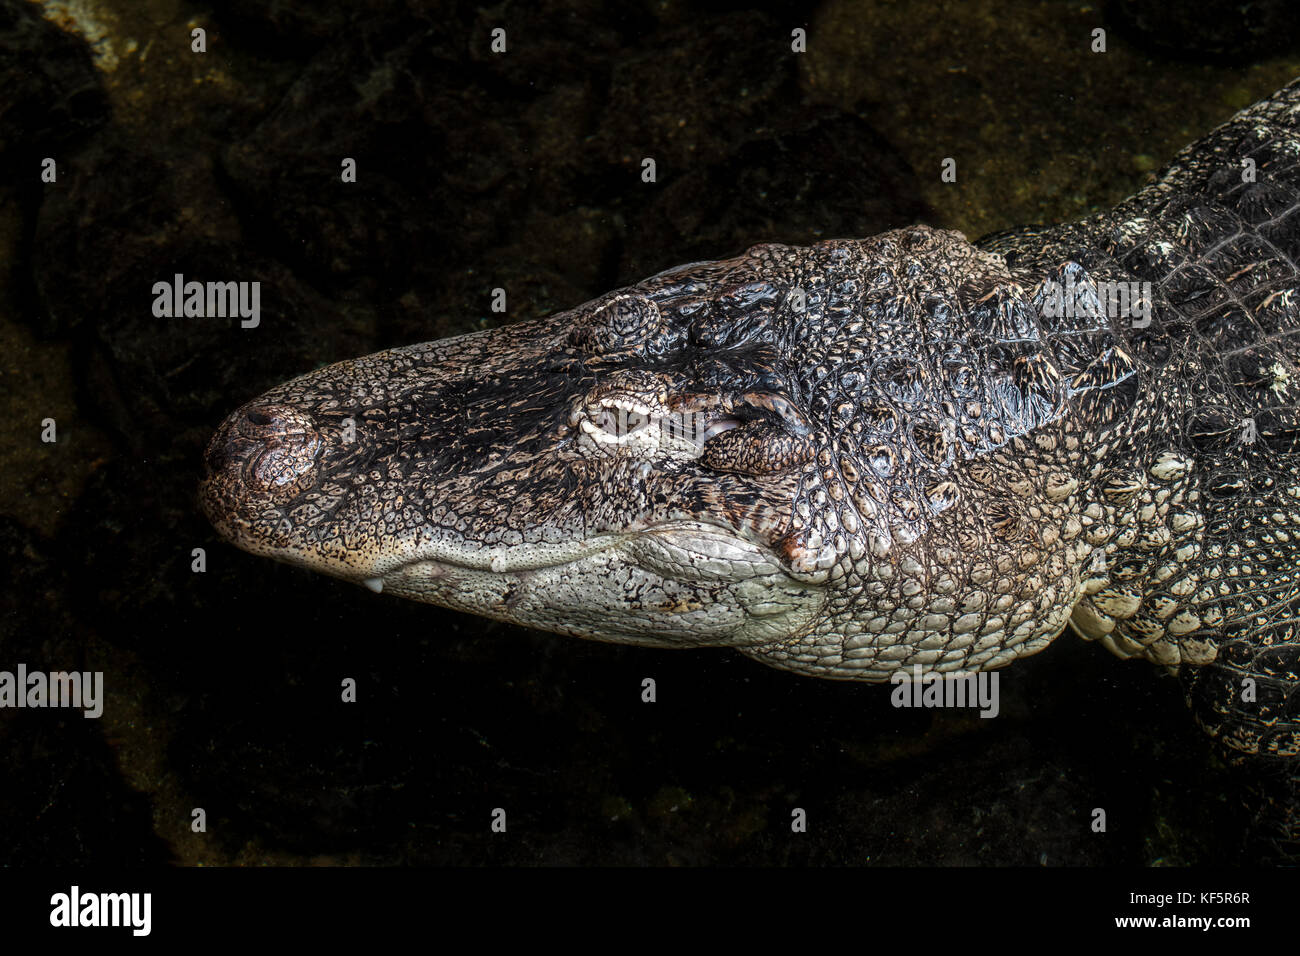 American alligator / gator / common alligator (Alligator mississippiensis) close up of head - Stock Image